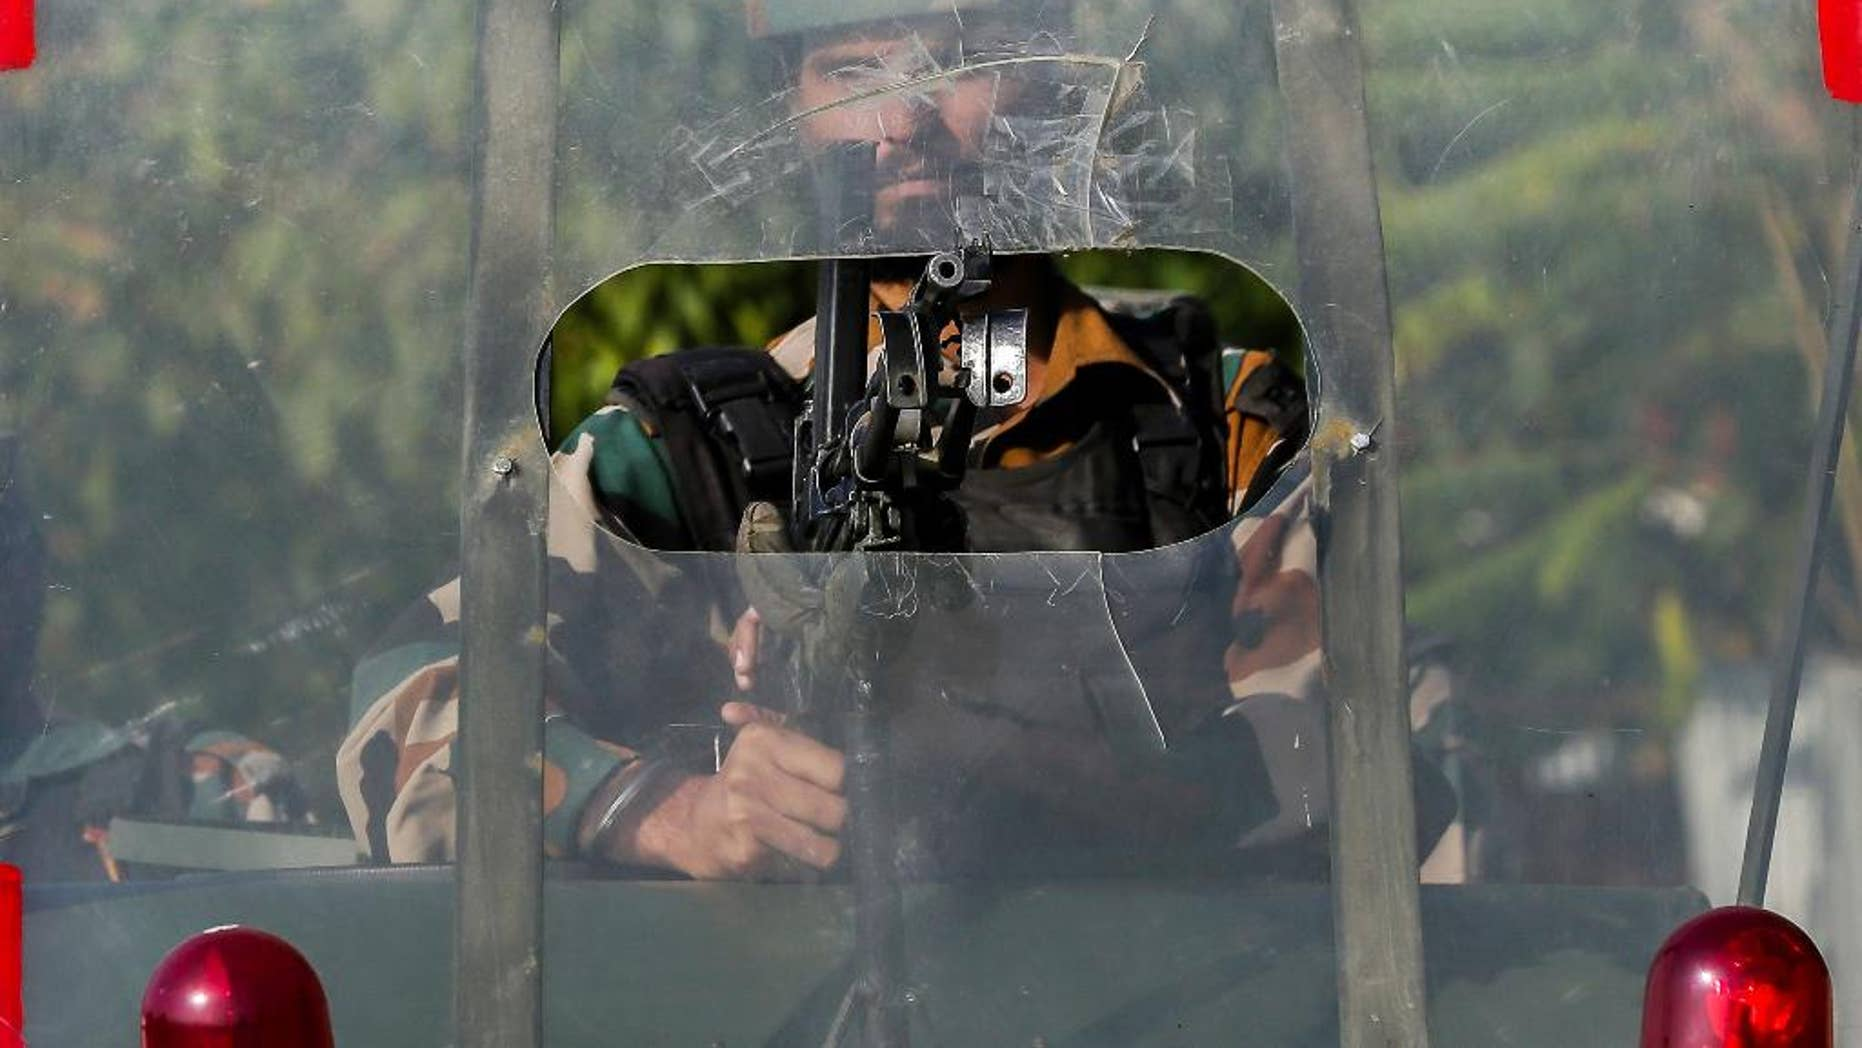 An Indian army soldier guards outside the base camp which was attacked by suspected militants at Baramulla, northwest of Srinagar, Indian controlled Kashmir, Monday, Oct. 3, 2016. A gun battle with a group of militants who attacked an Indian army camp in the Indian portion of Kashmir has ended early Monday morning, police said. (AP Photo/Mukhtar Khan)